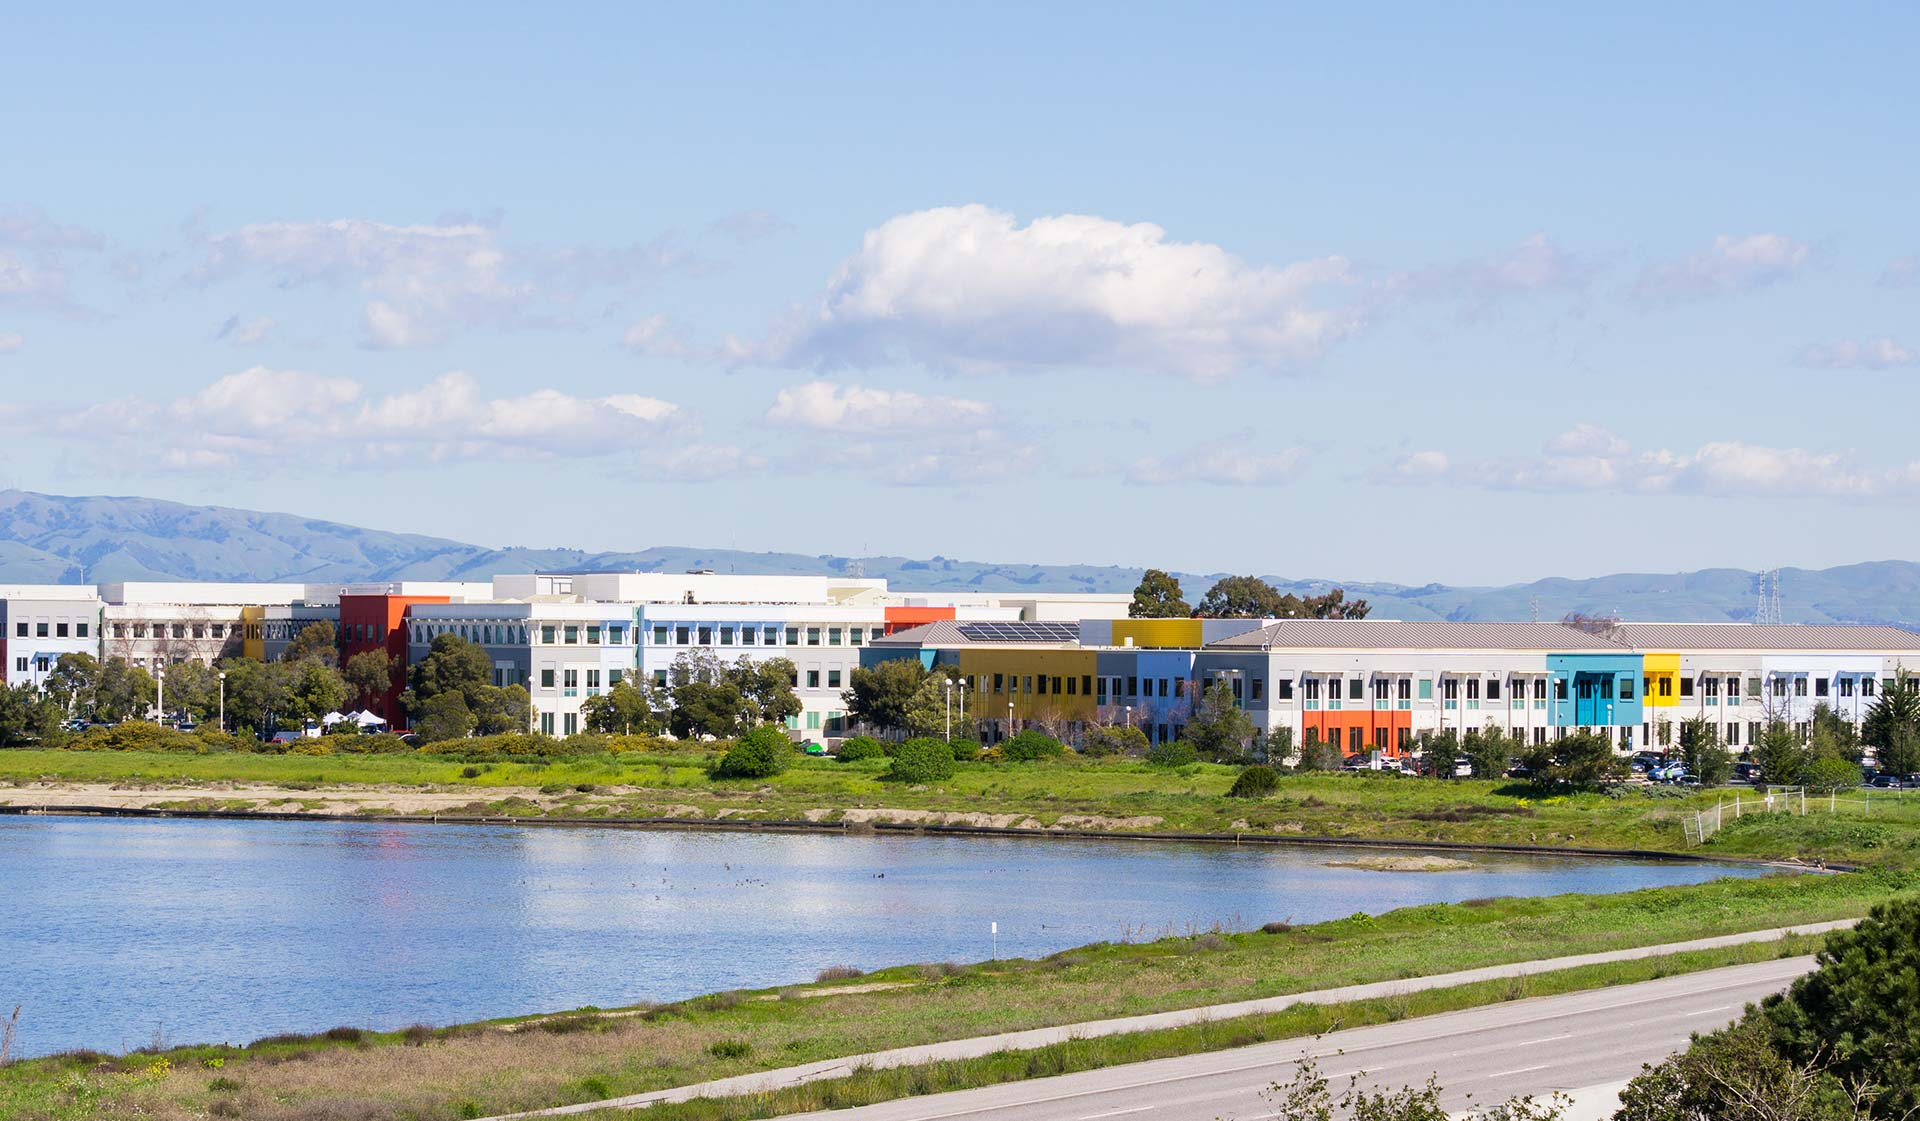 707 Leahy - Redwood City, CA - Facebook HQ